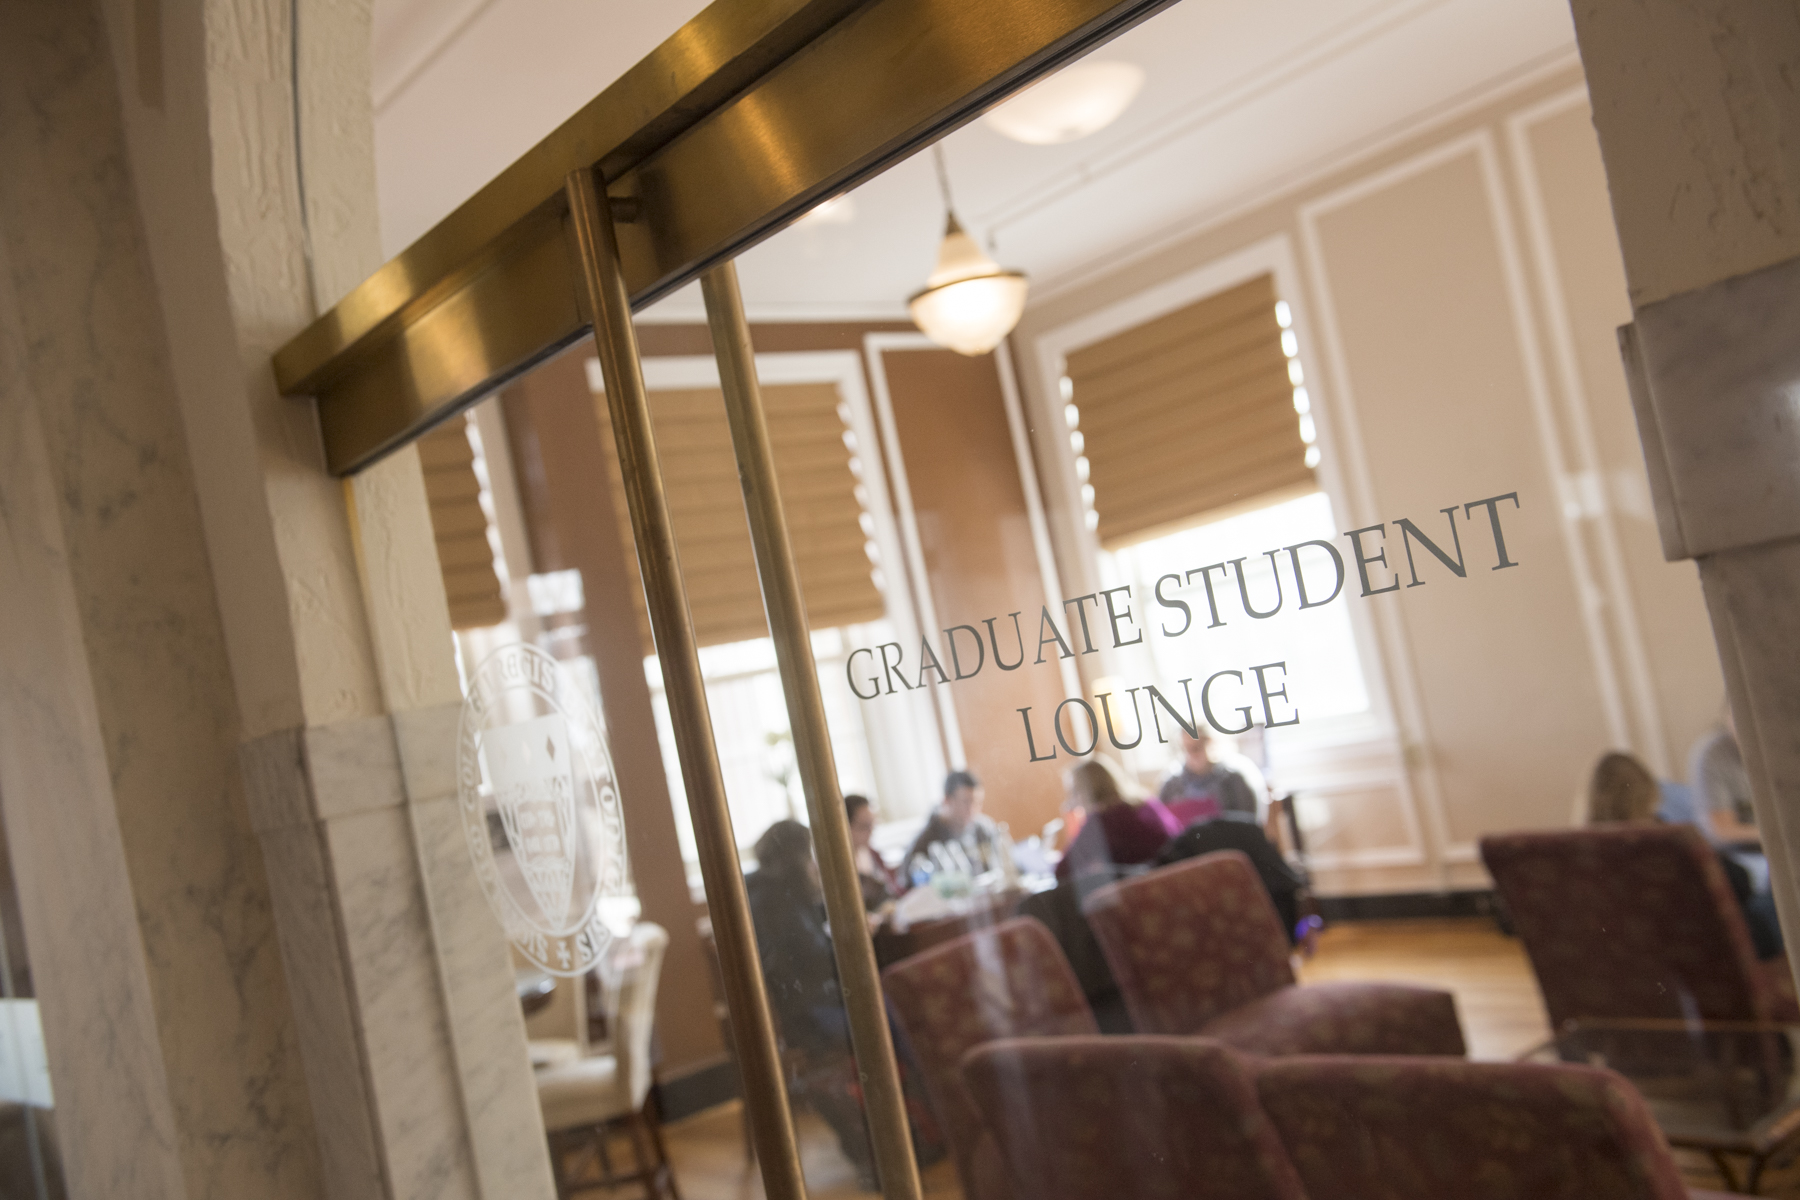 Admissions marketing photography at Regis College in suburban Boston